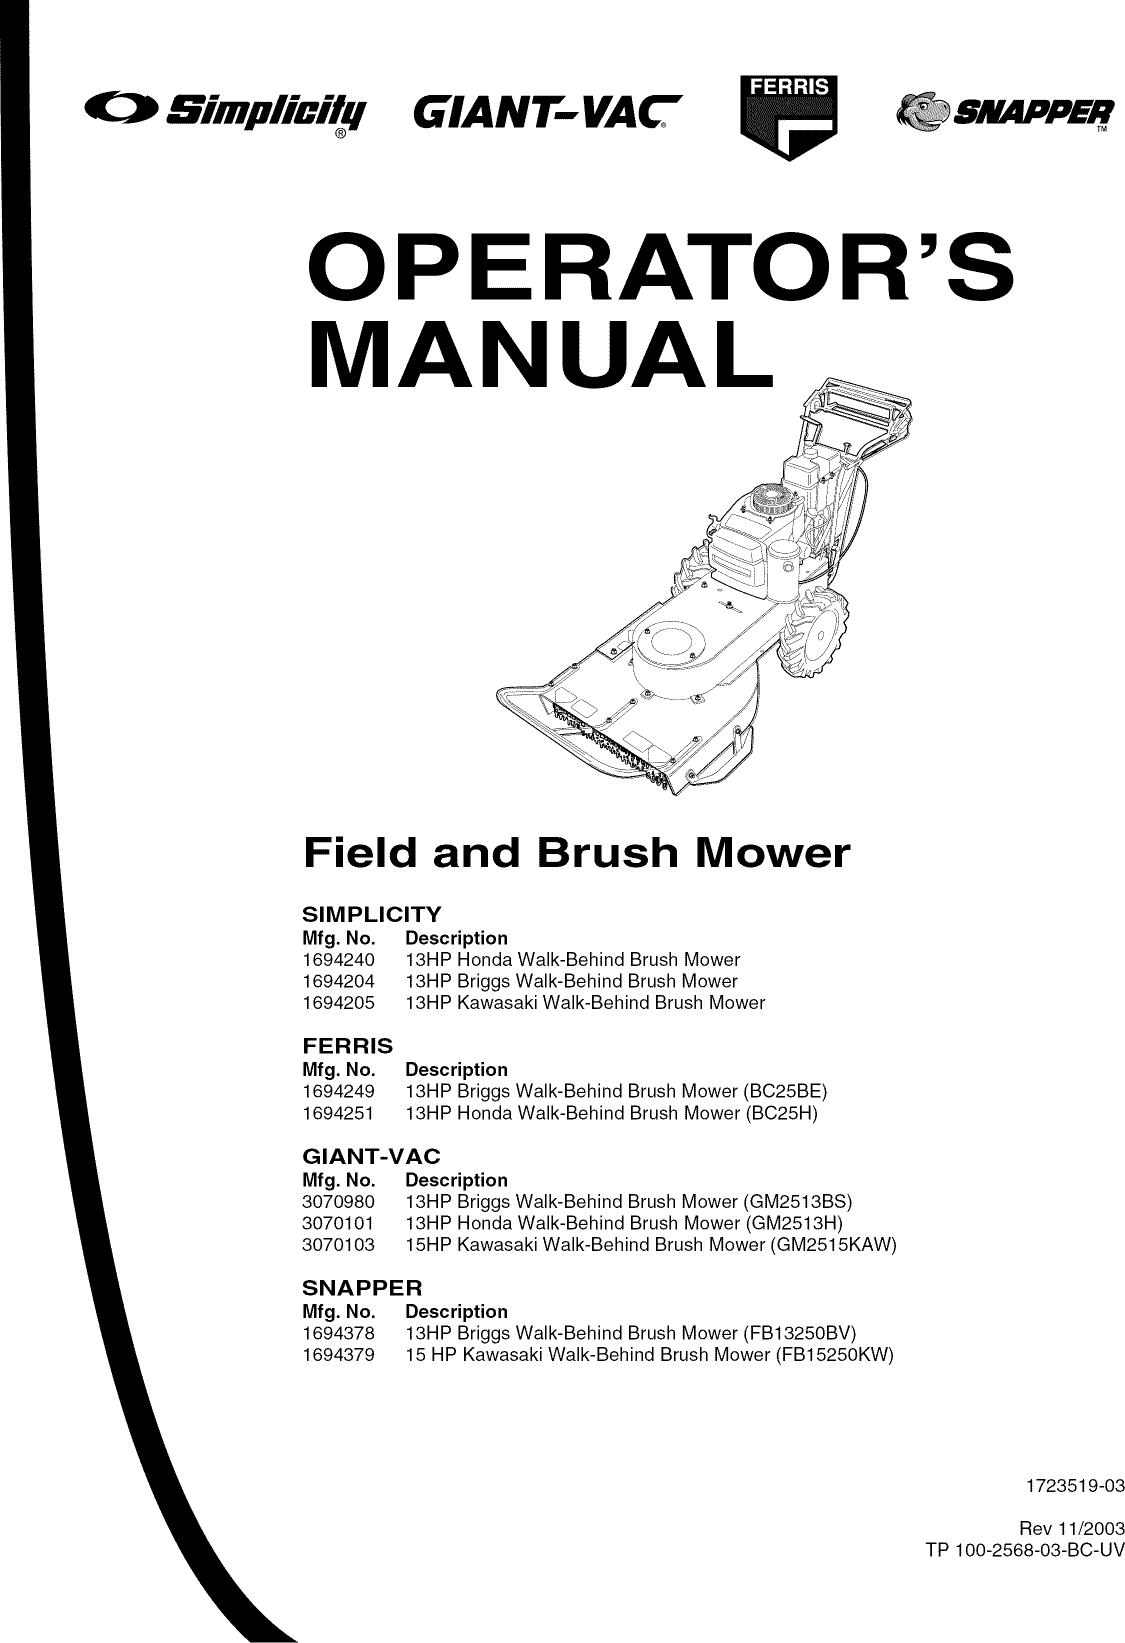 Snapper FB13250BV User Manual LAWN MOWER Manuals And Guides L0807700